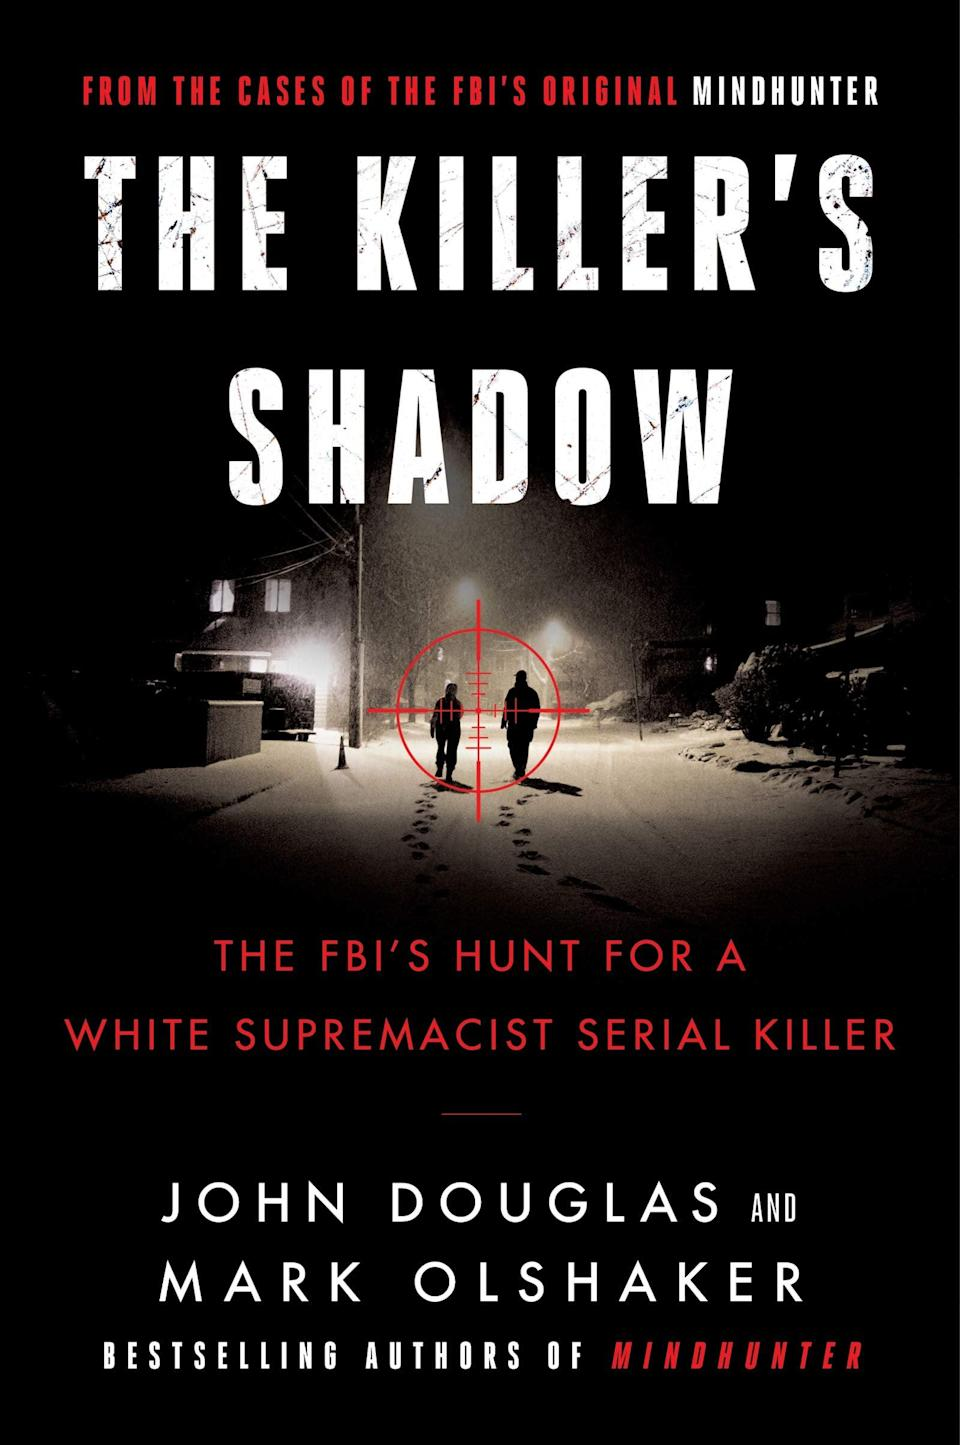 <p>John Douglas and Mark Olshaker, the authors of <strong>Mindhunter</strong>, return with a chilling true crime story that feels all too relevant in today's climate, despite the fact that it covers a case from the 1970s. <span><strong>The Killer's Shadow</strong></span> chronicles Douglas's hunt for the white supremacist serial killer Joseph Paul Franklin, and his eventual confrontation with the man once he's behind bars. Along the way, Douglas recalls how Franklin's case became make-or-break for the FBI's then-new behavioral science unit.</p> <p><em>Out Nov. 17</em></p>